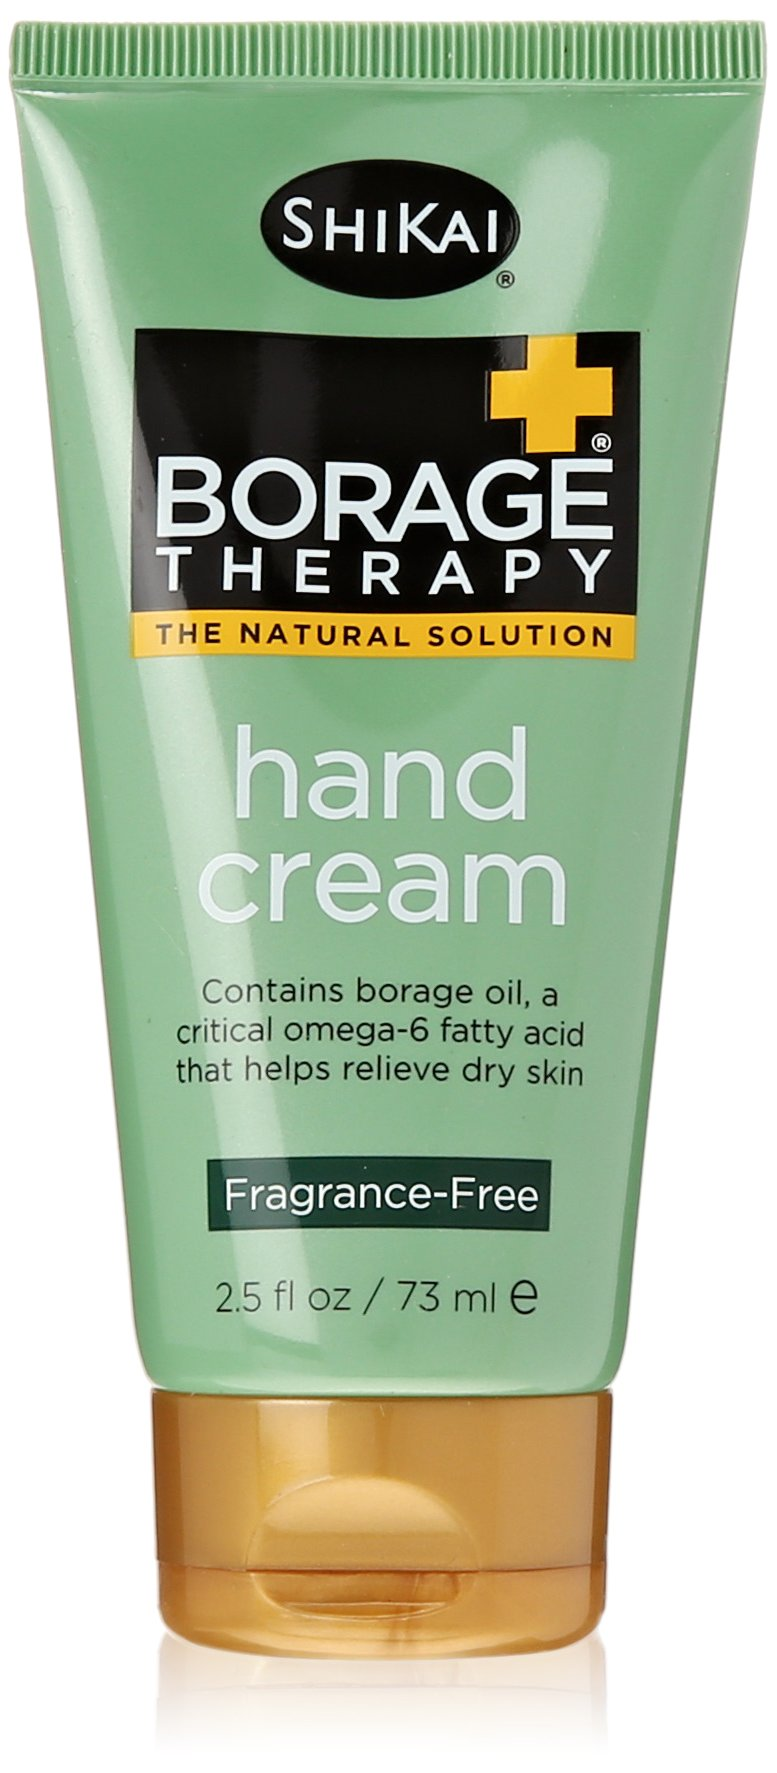 ShiKai - Borage Therapy Plant-Based Hand Cream, Soothing & Moisturizing Relief For Dry, Red and Itchy Skin, Non-Greasy, Sensitive Skin Friendly (Fragrance-Free, 2.5 Ounces)